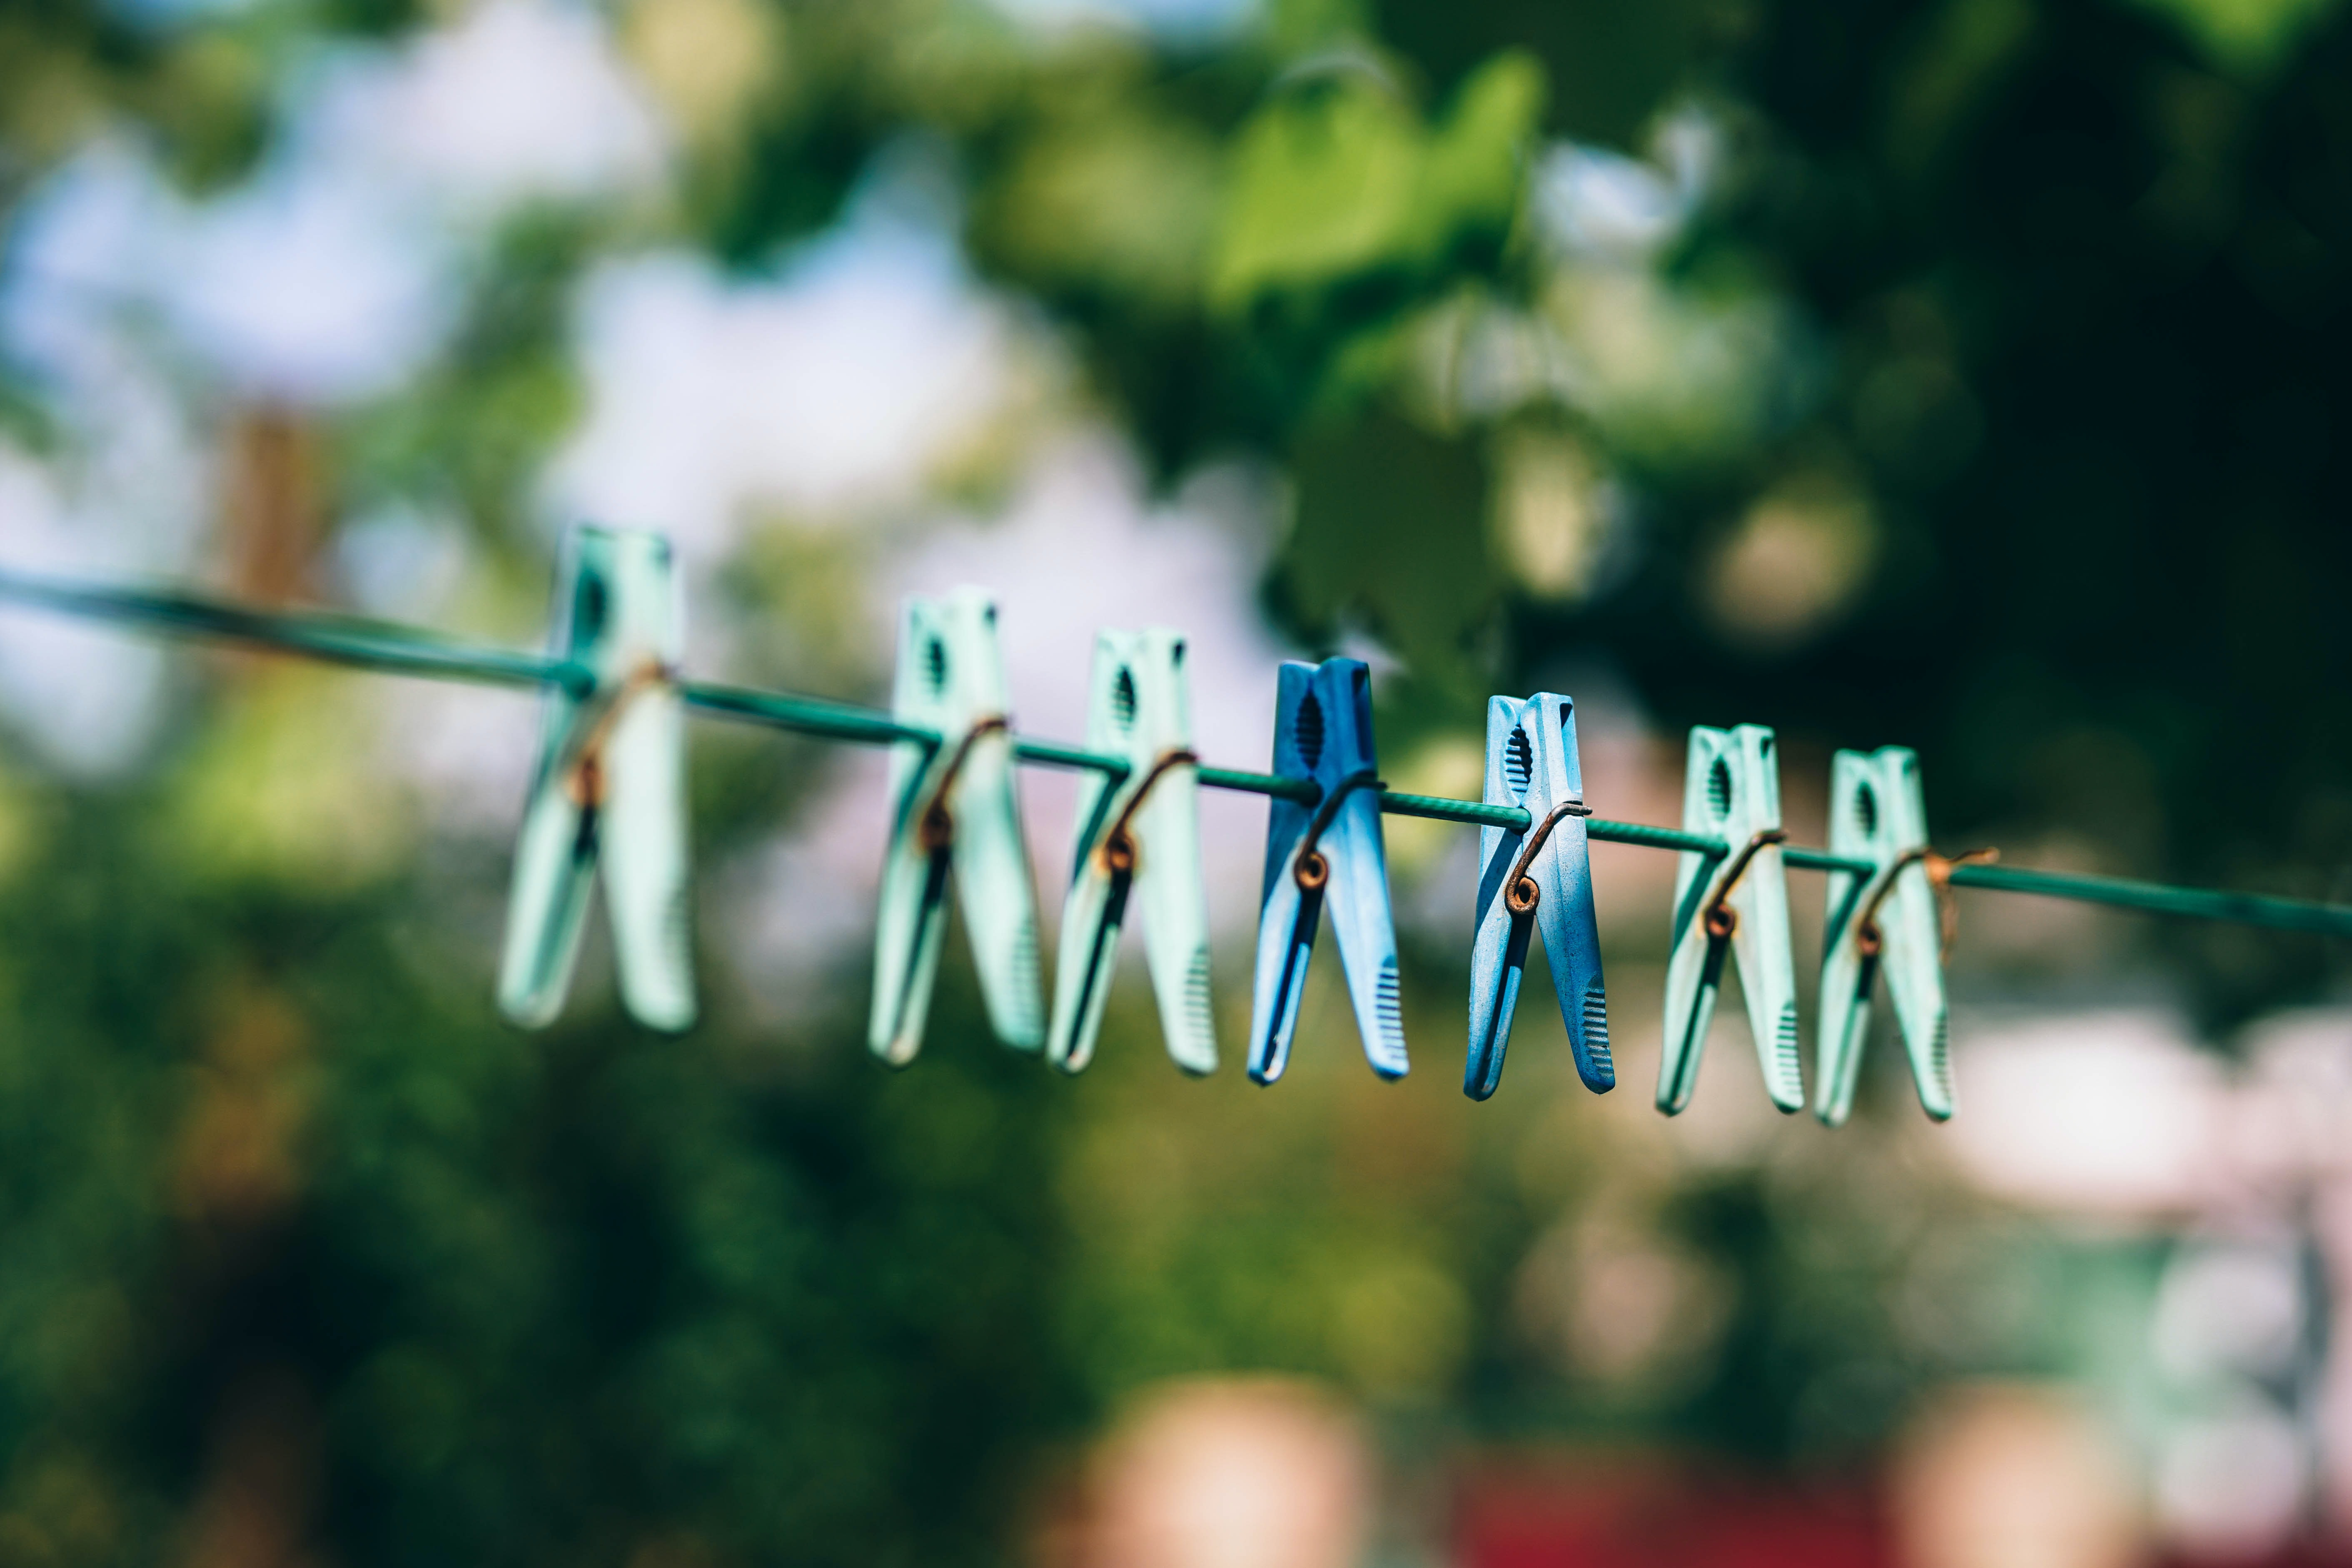 blue and green clothespins